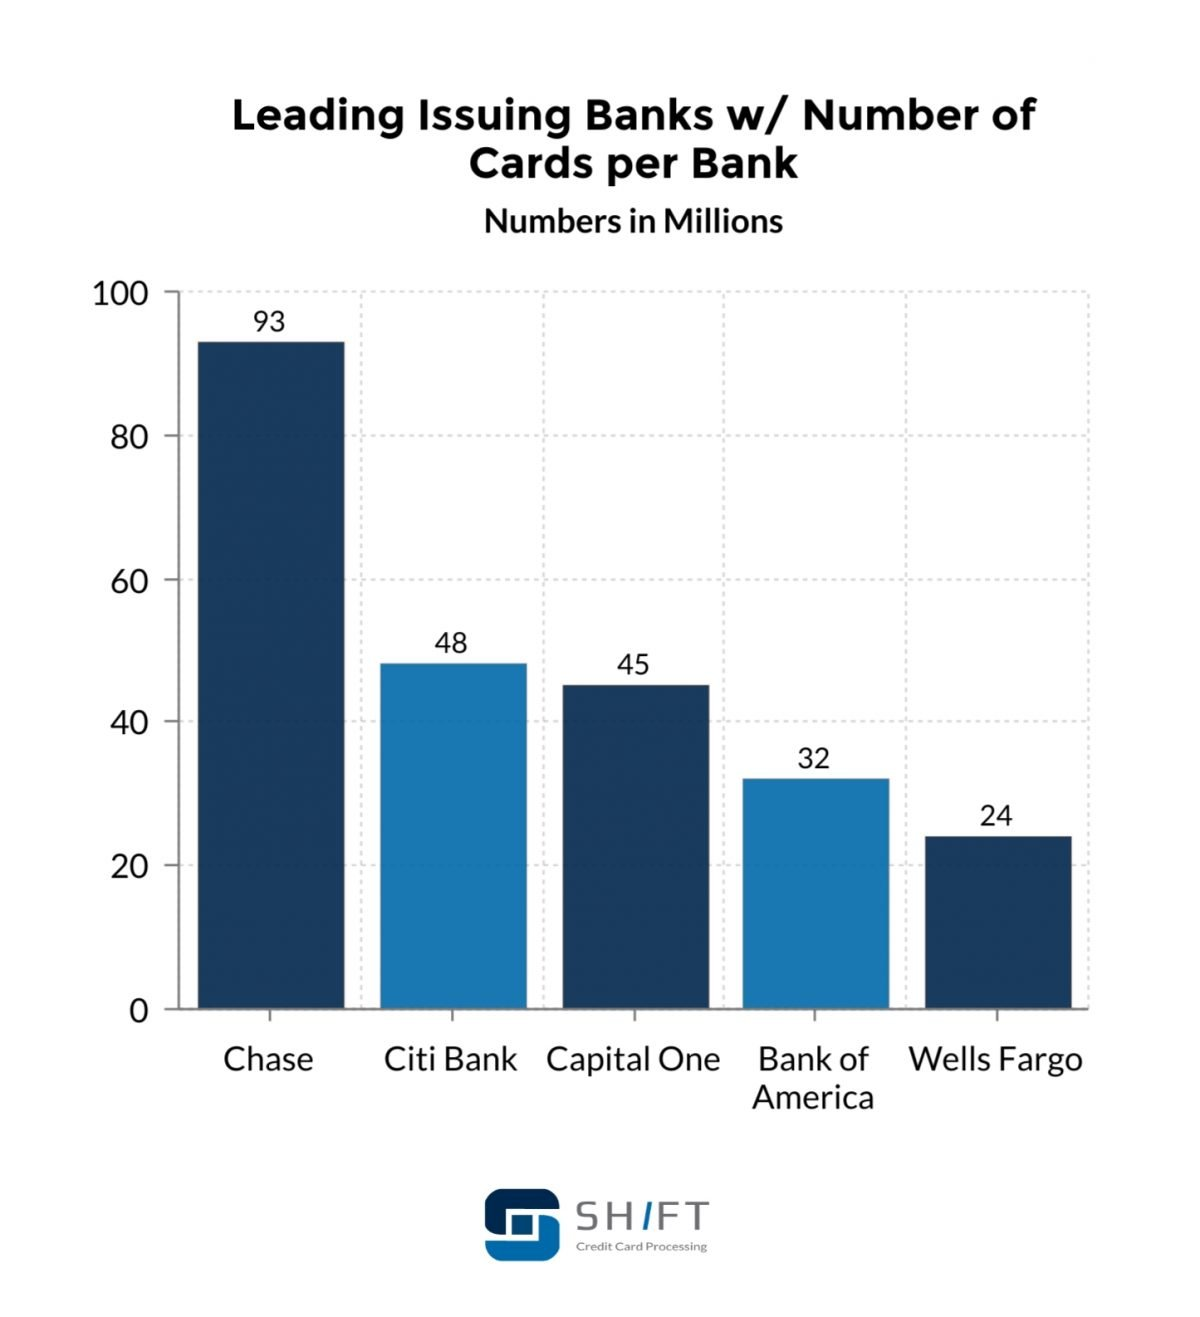 leading issuing banks and cards per bank